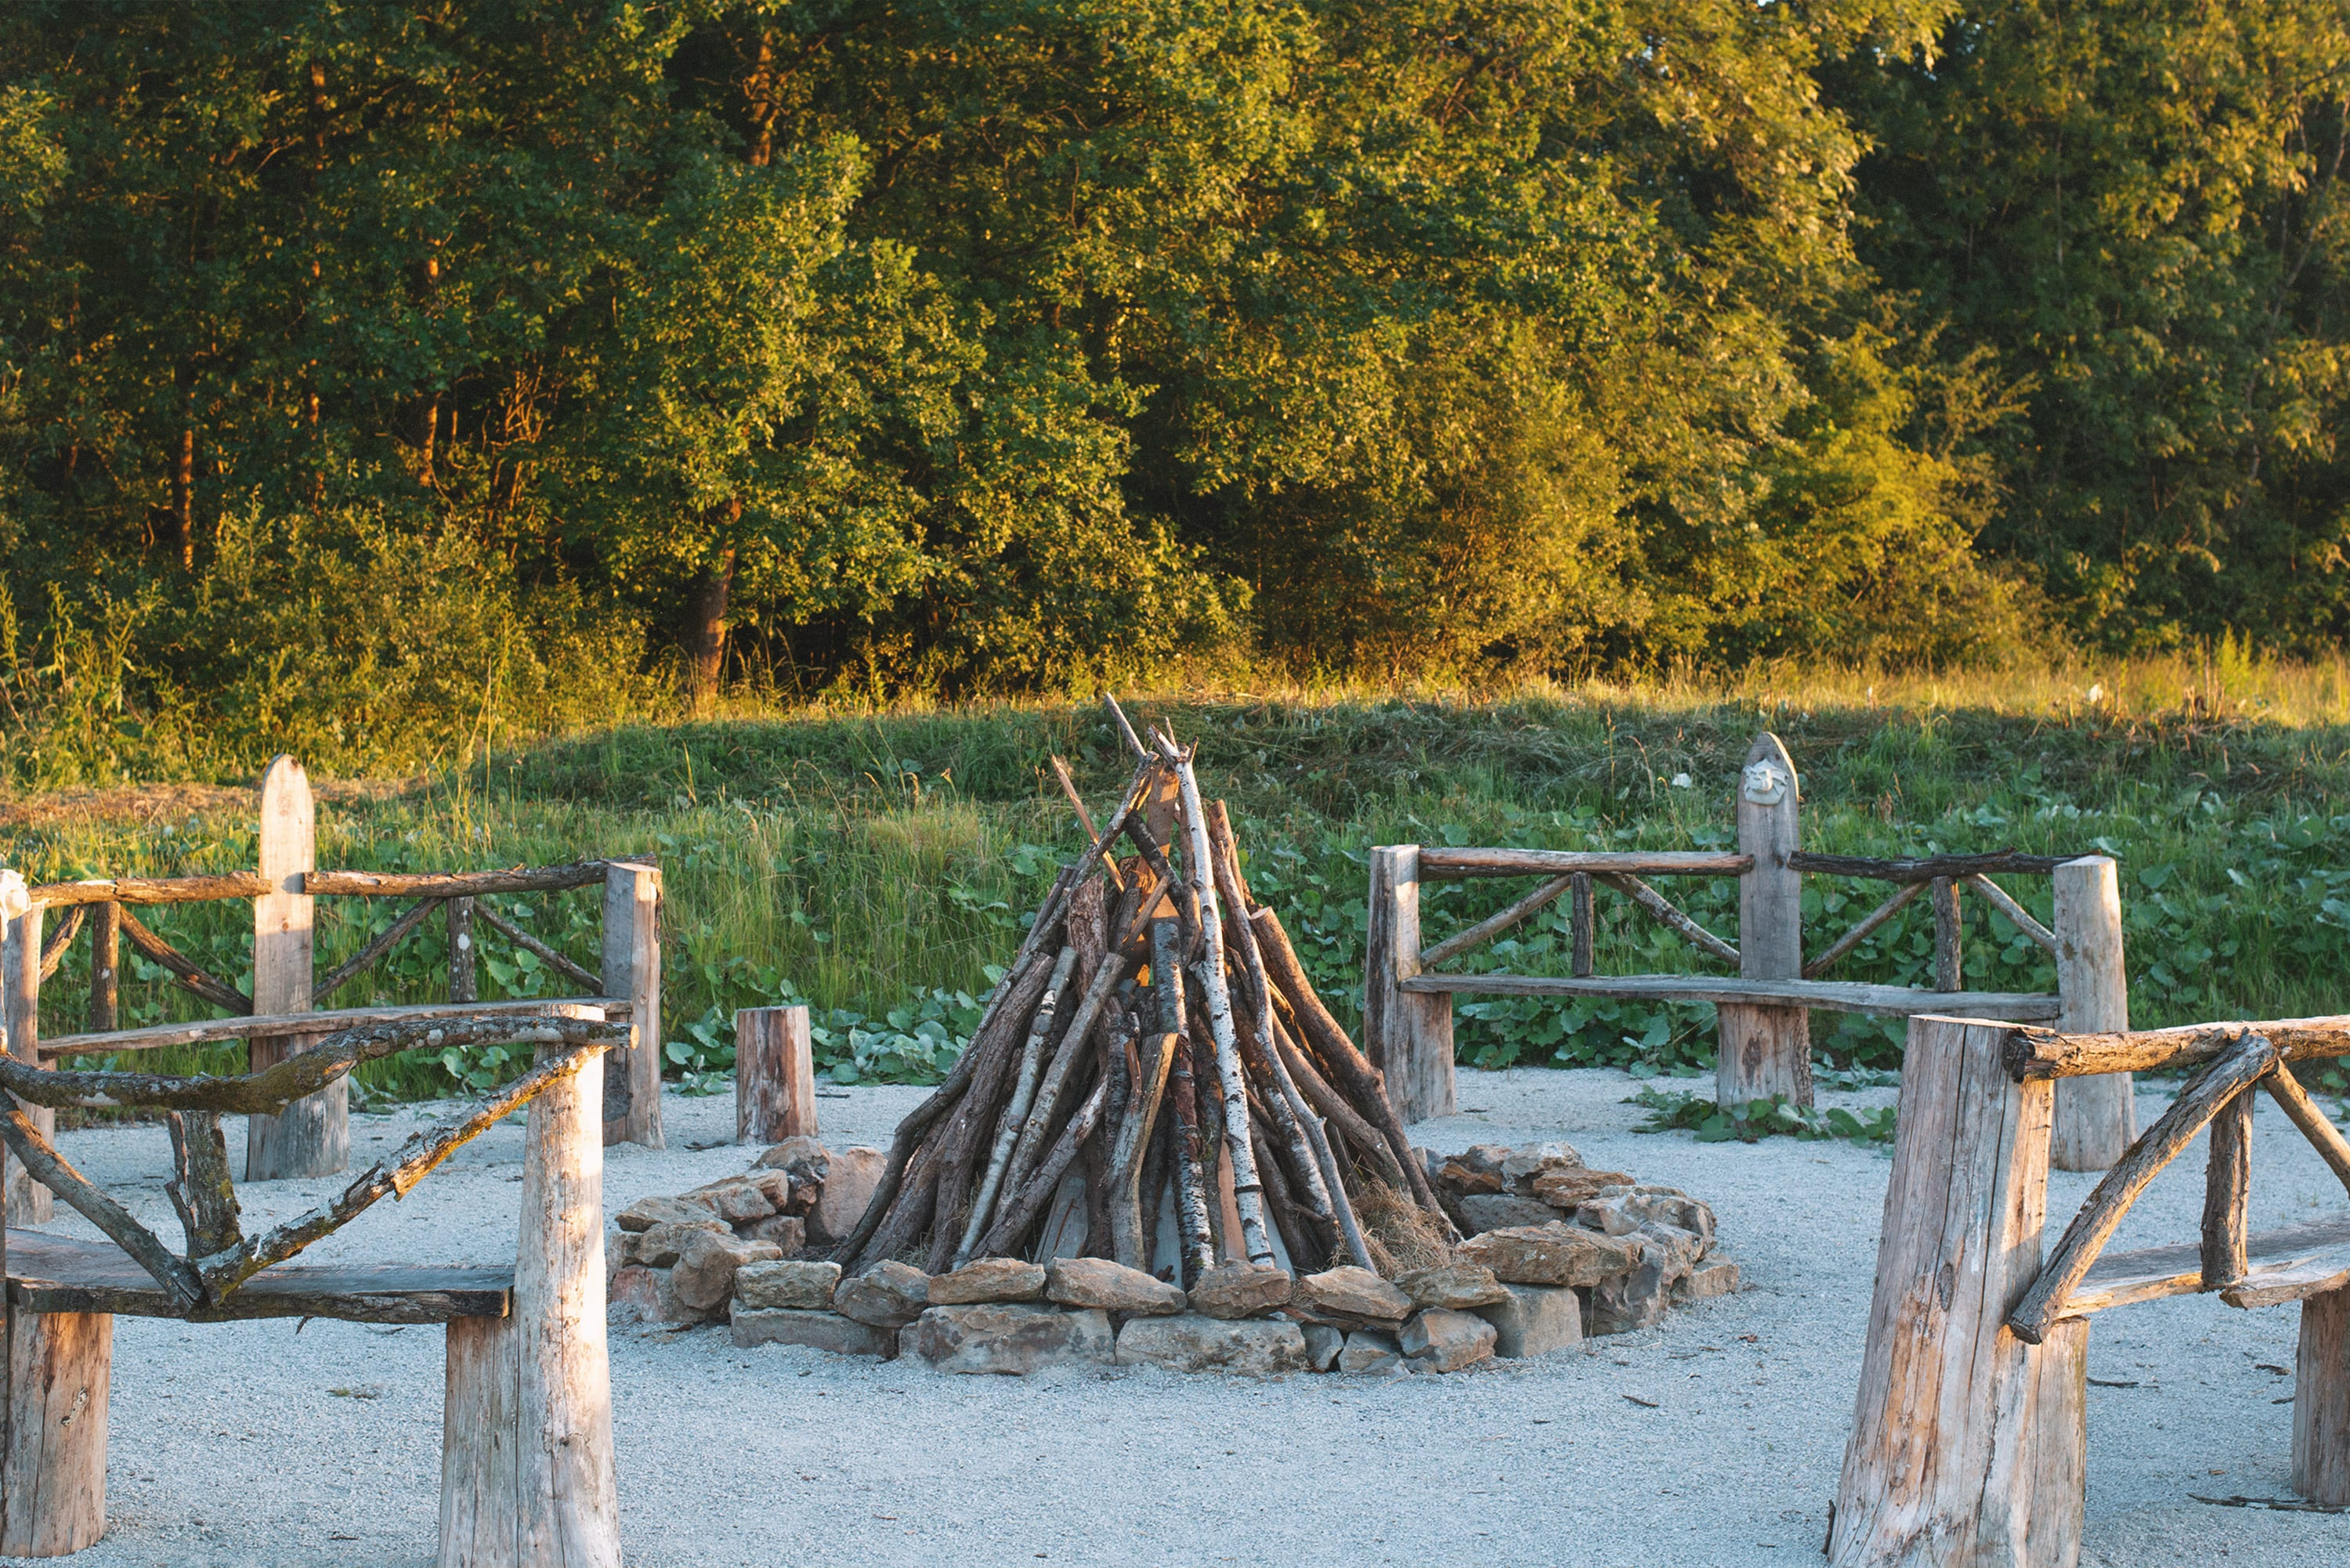 Natural seating around a fire pit